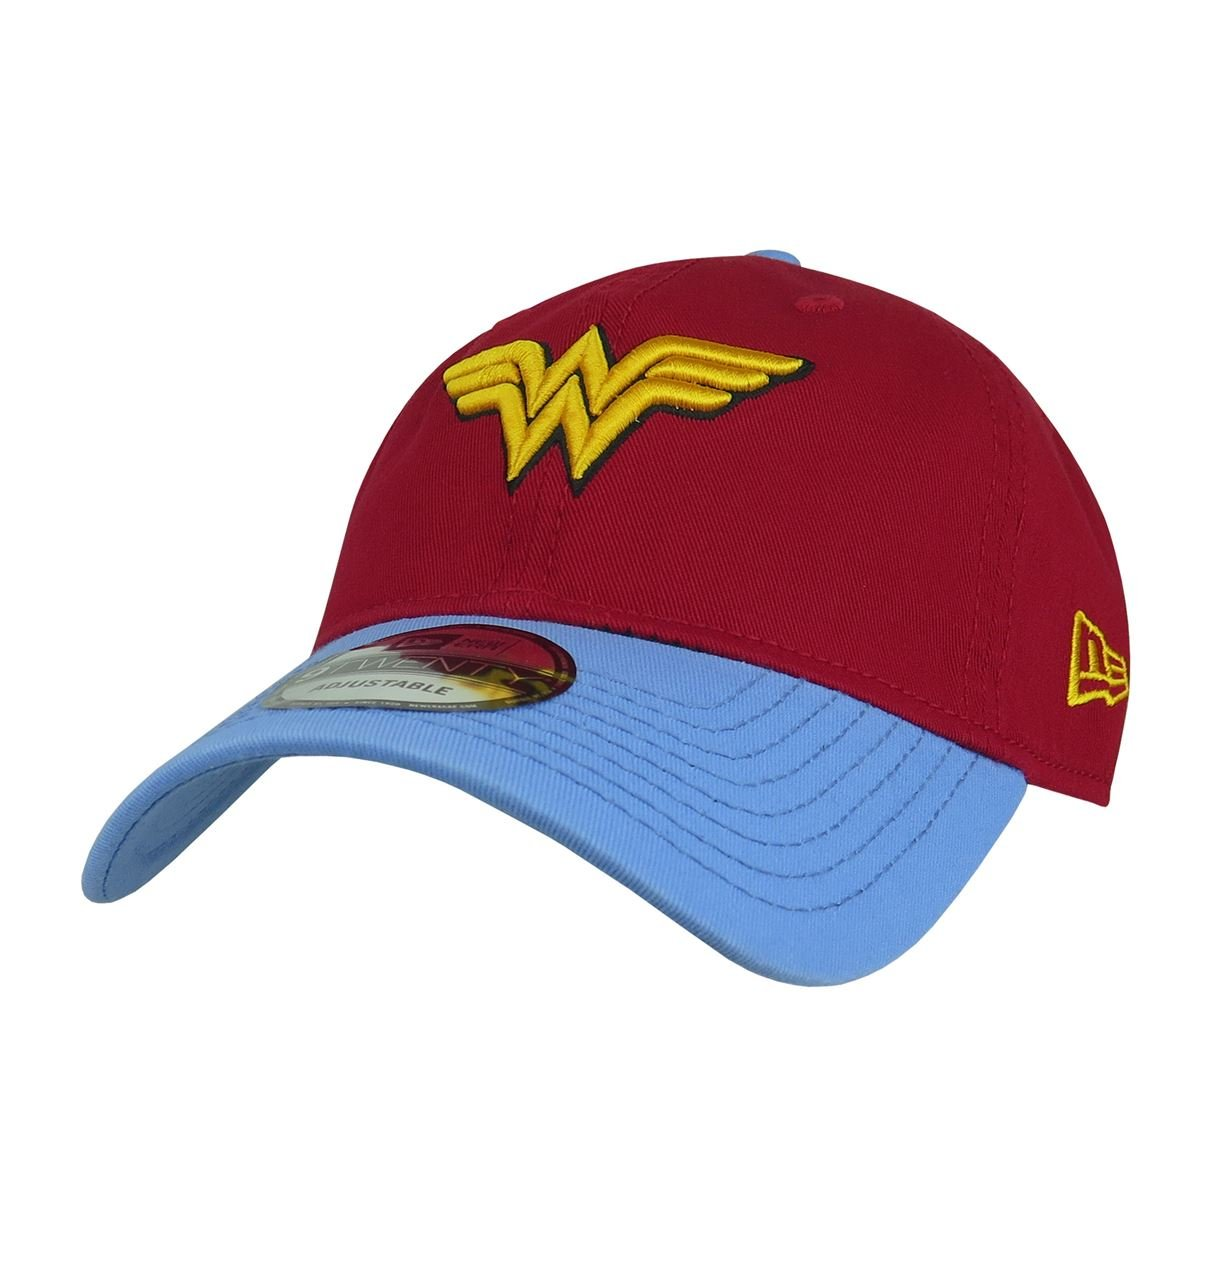 Wonder Woman 9Twenty Adjustable Hat